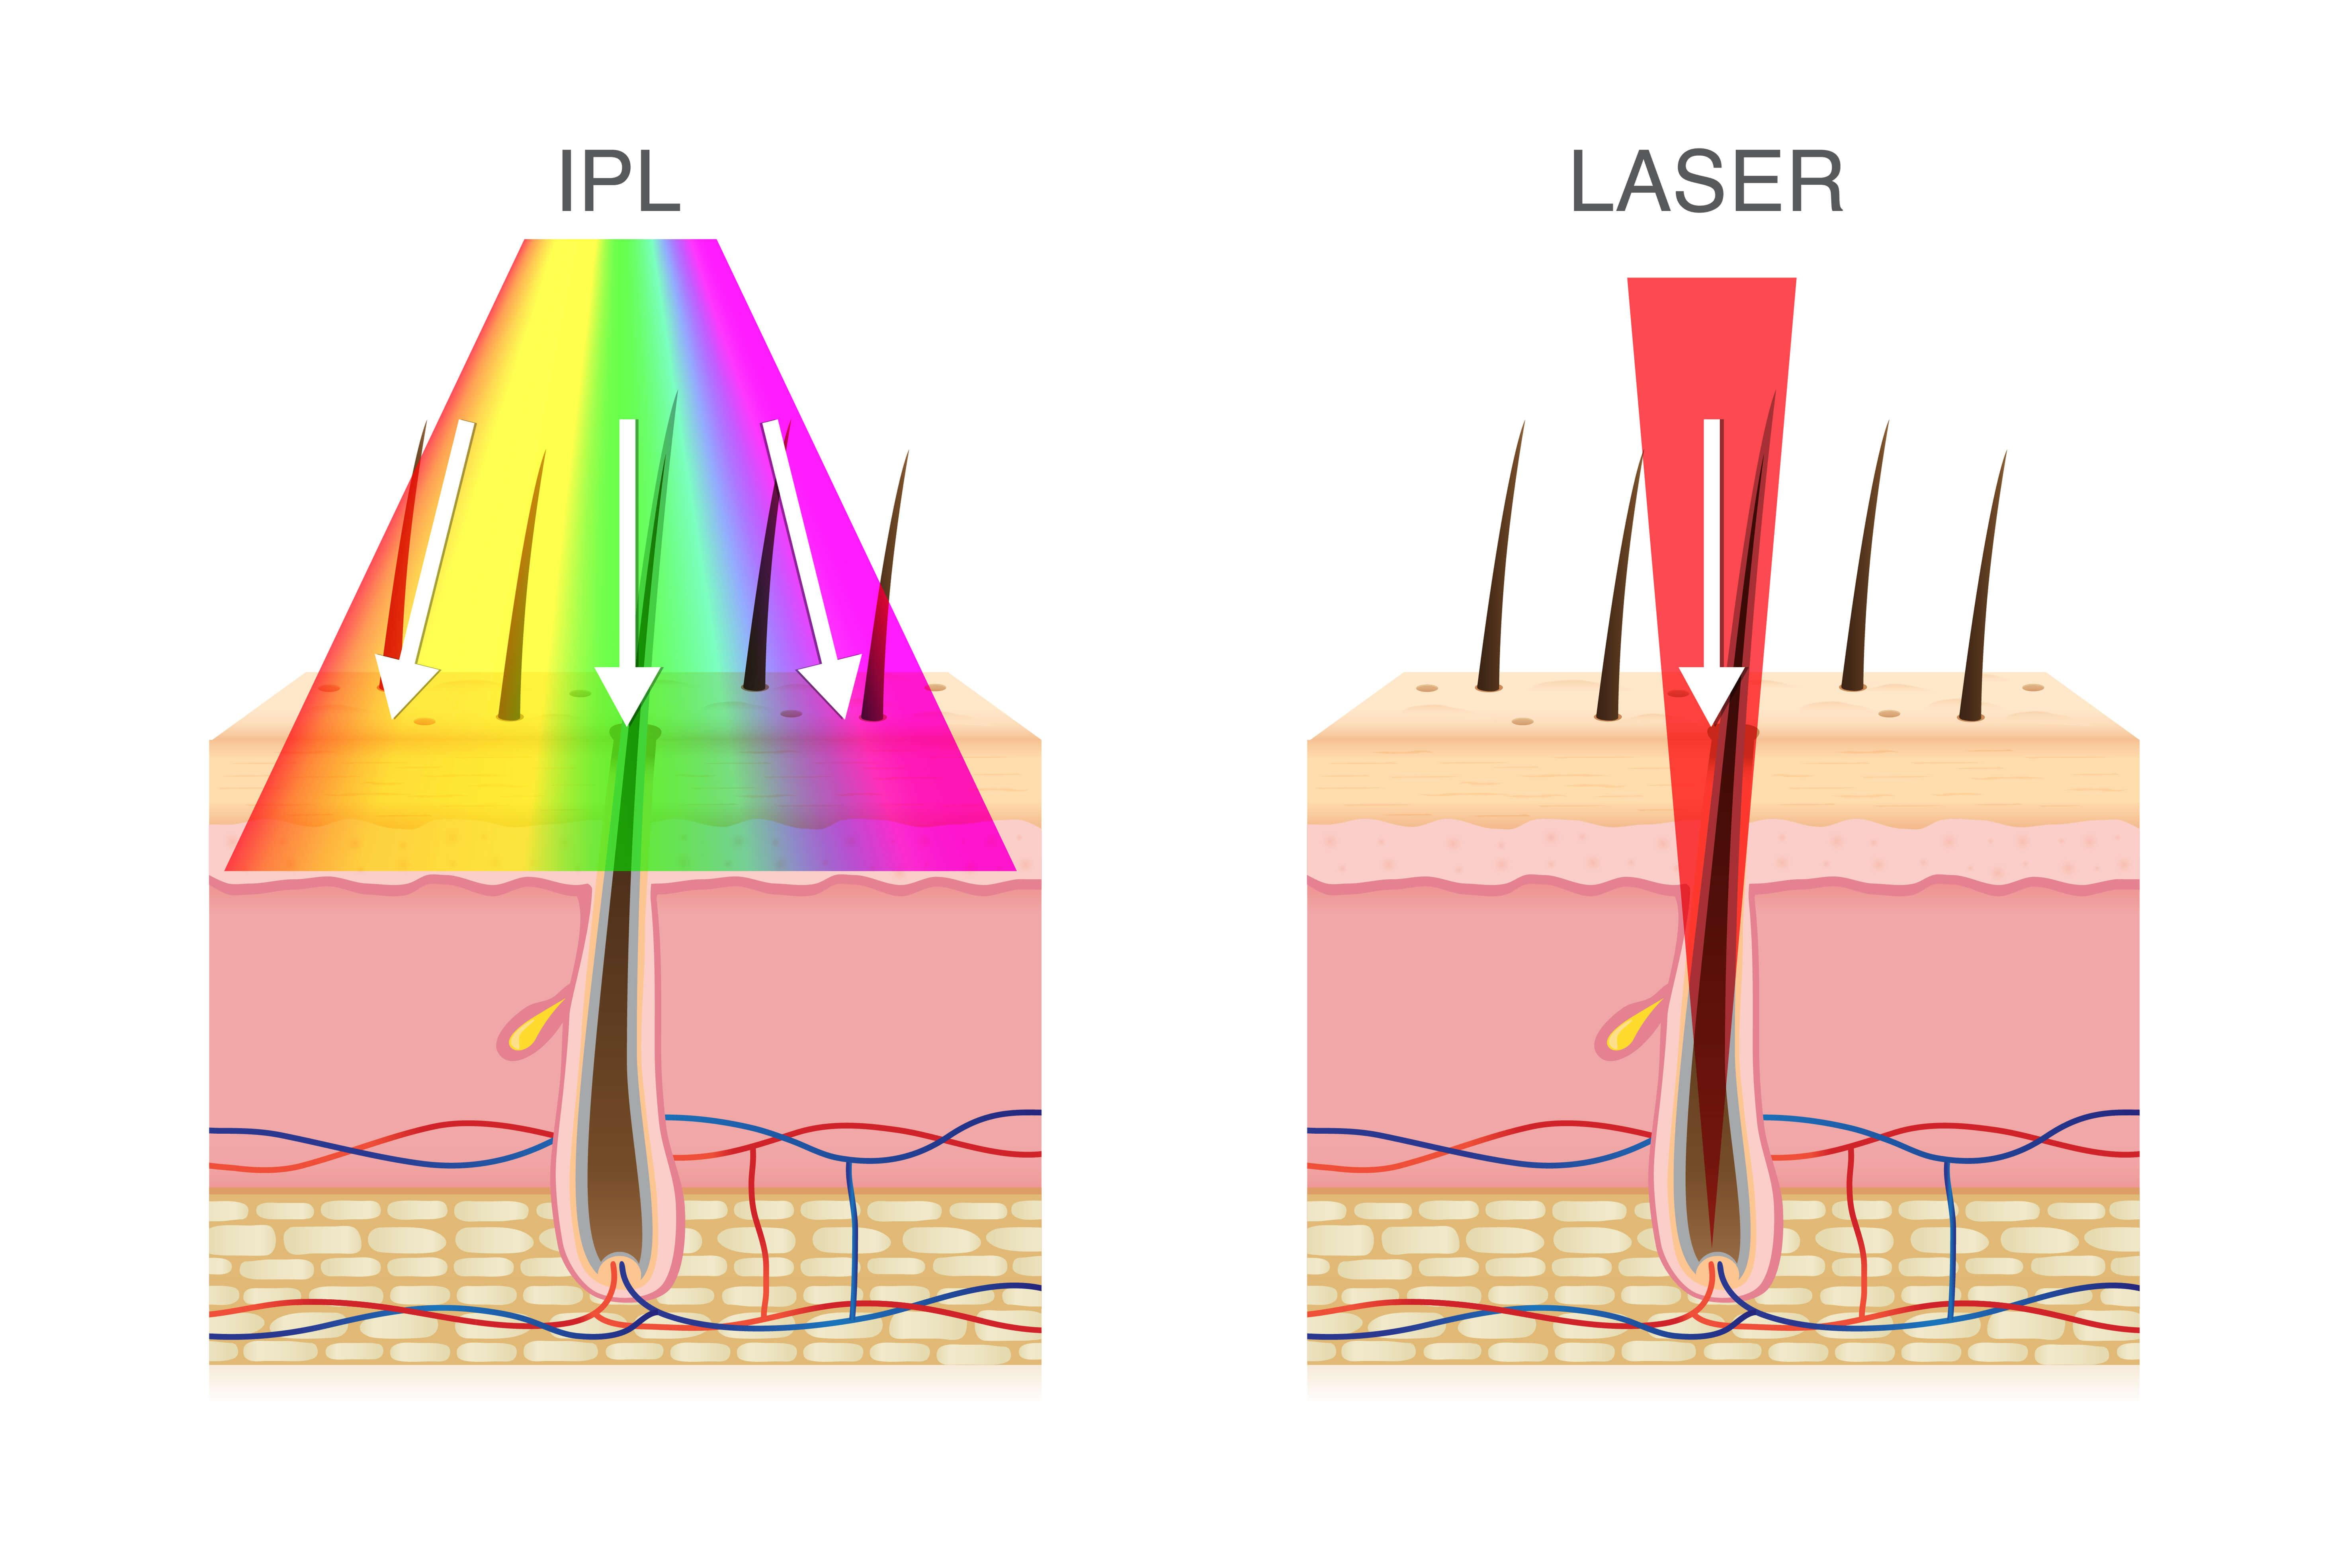 Illustration of IPL versus laser treatment